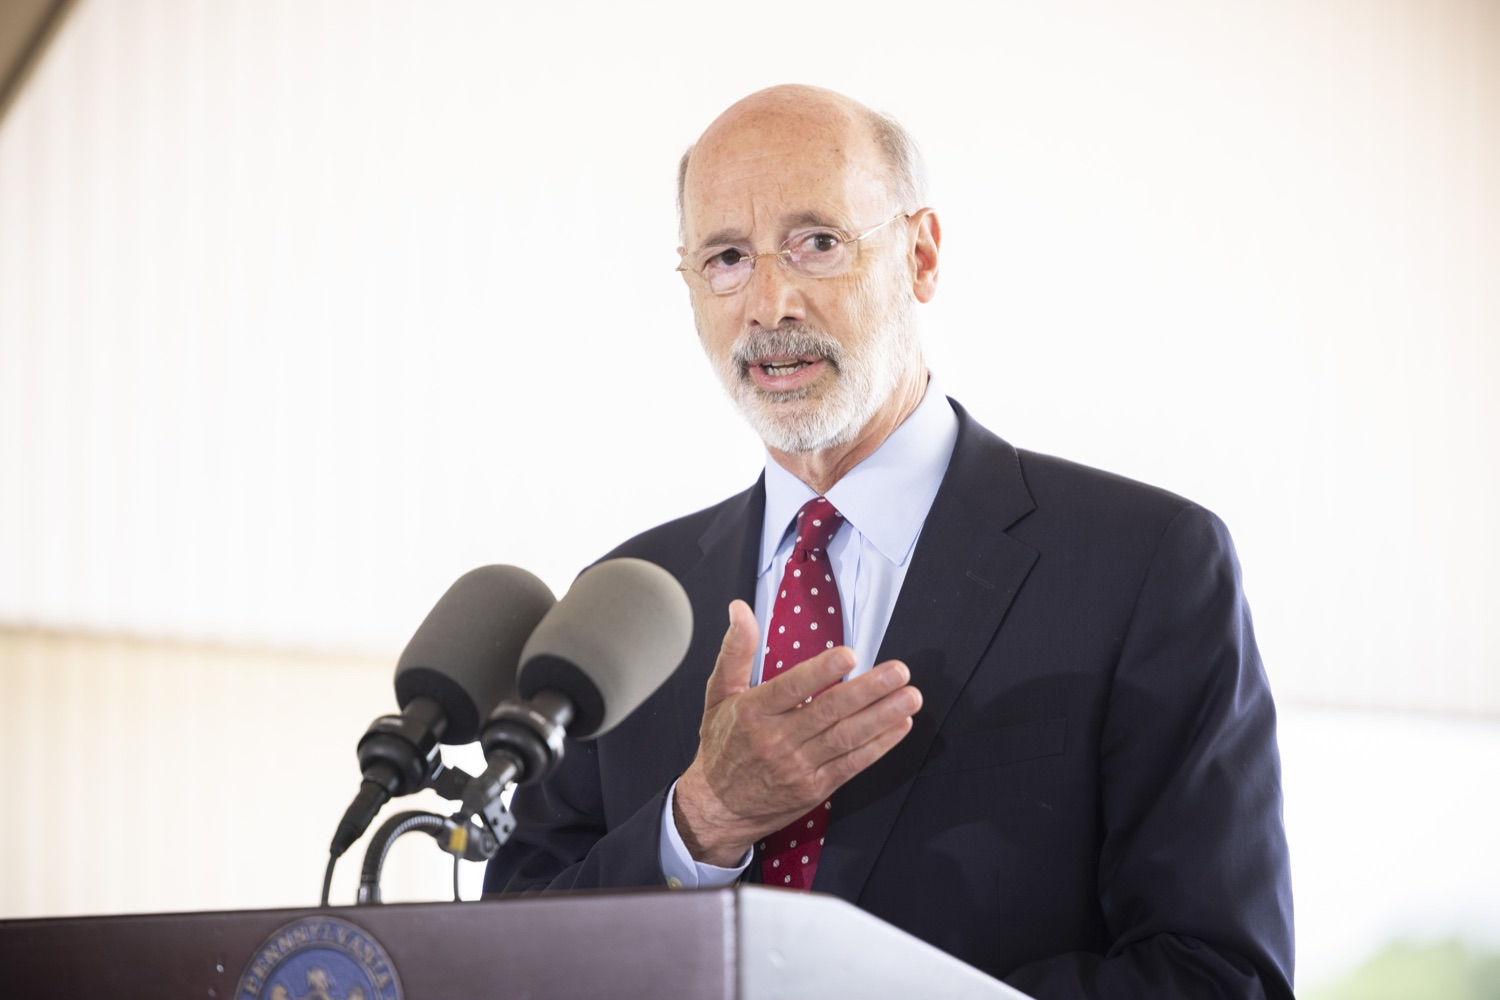 """<a href=""""https://filesource.wostreaming.net/commonwealthofpa/photo/18932_gov_chirp_dz_003.jpg"""" target=""""_blank"""">⇣Download Photo<br></a>Pennsylvania Governor Tom Wolf speaking with the press.  Governor Tom Wolf today joined the Pennsylvania Department of Community and Economic Development, Bucks County Commissioners, Bristol Borough Mayor Joseph Saxton, local lawmakers, Bucks County Economic Development Corporation, Visit Bucks County, the Bucks County Redevelopment Authority, and the owners of Itri Wood Fired to highlight the $7 million in grant funding provided to Bucks County restaurants through the COVID-19 Hospitality Industry Recovery Program(CHIRP).  JULY 16, 2021 - BRISTOL, PA"""